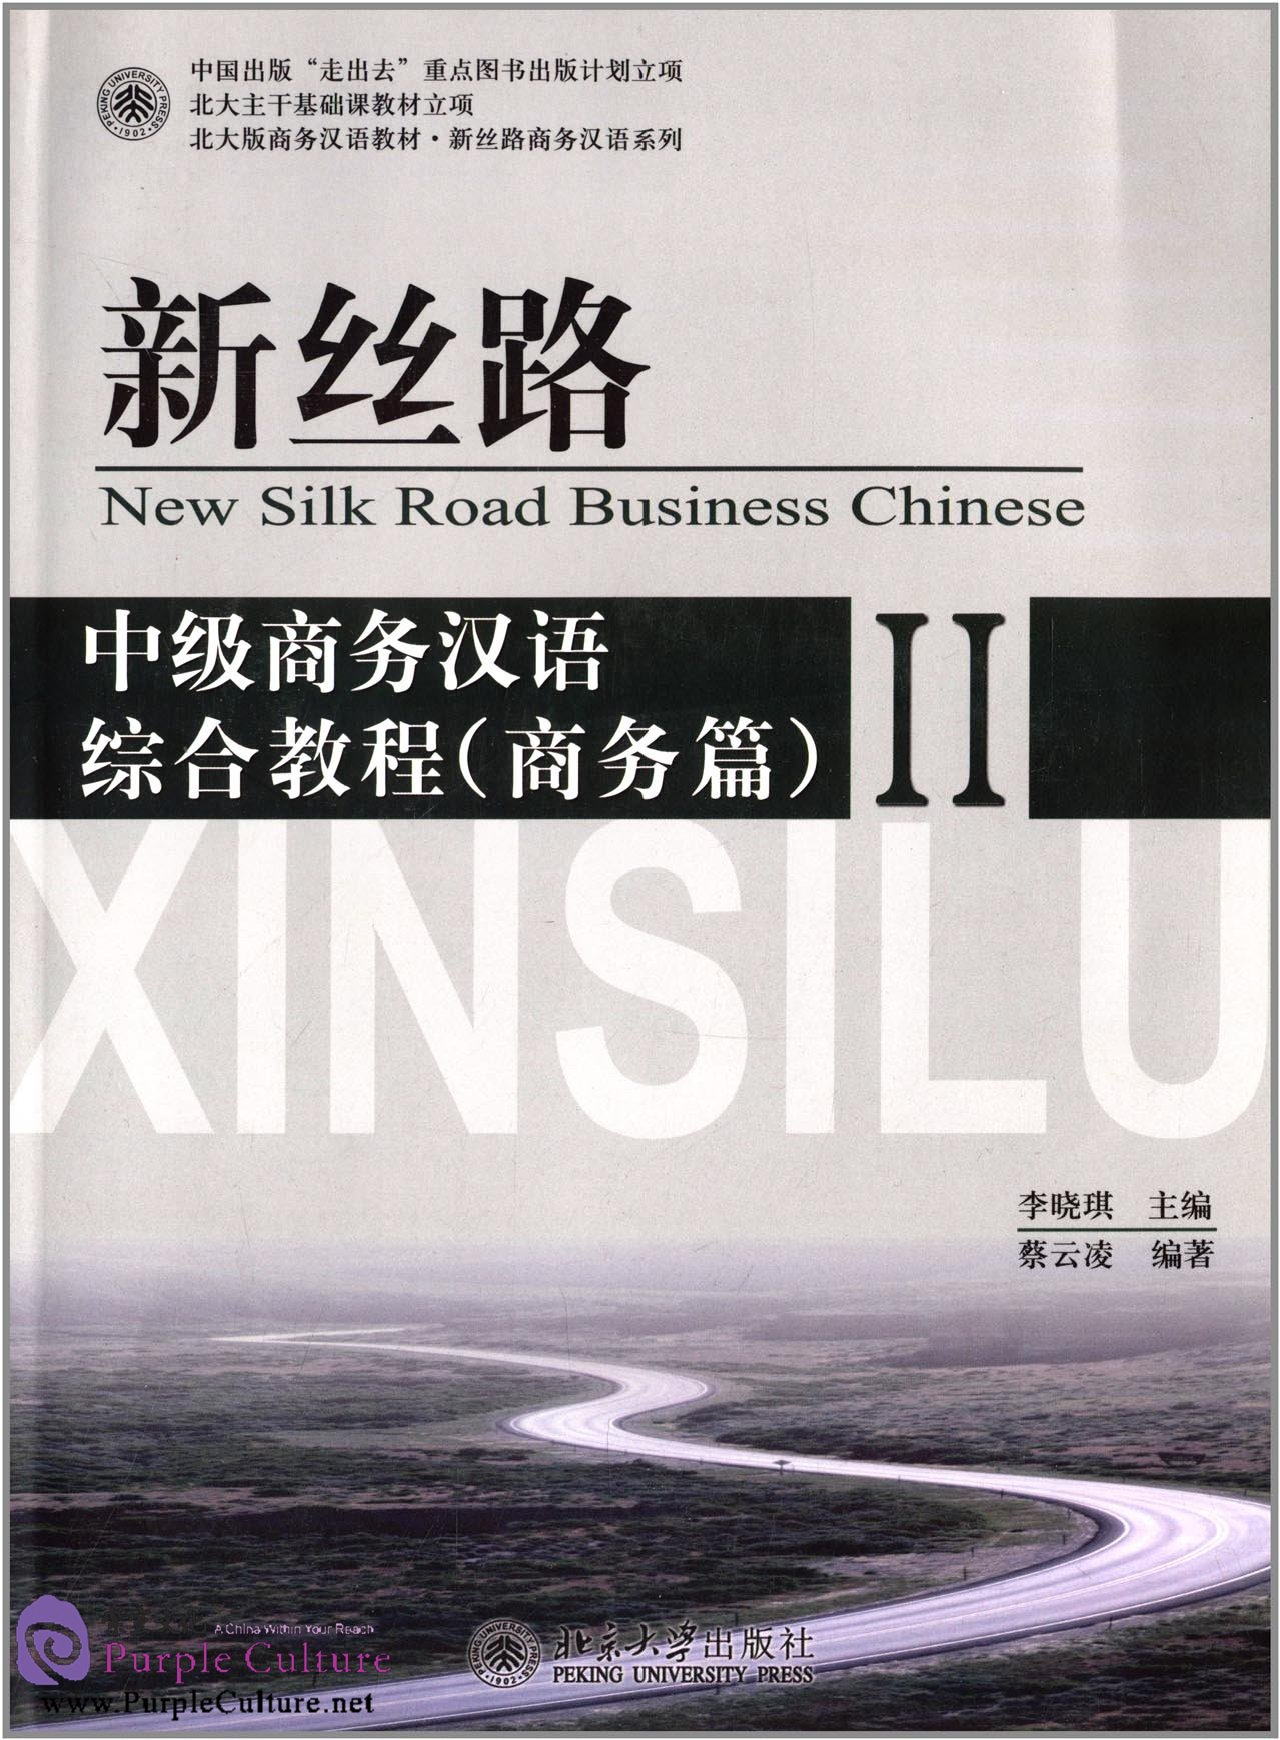 New Silk Road Business Chinese